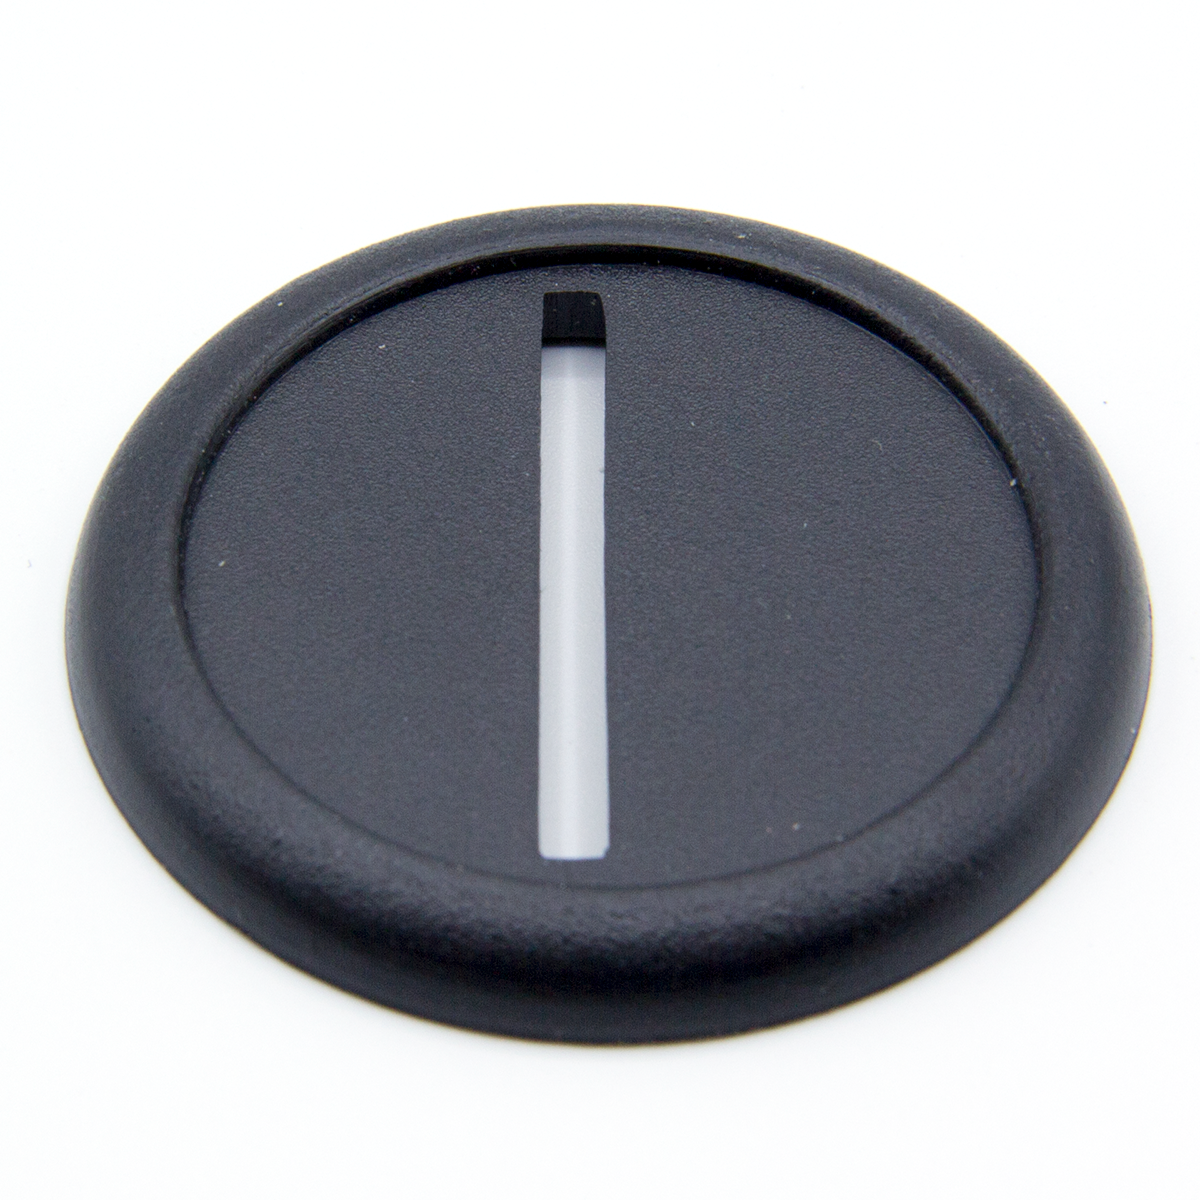 30mm Round Slotted Bases with Lip